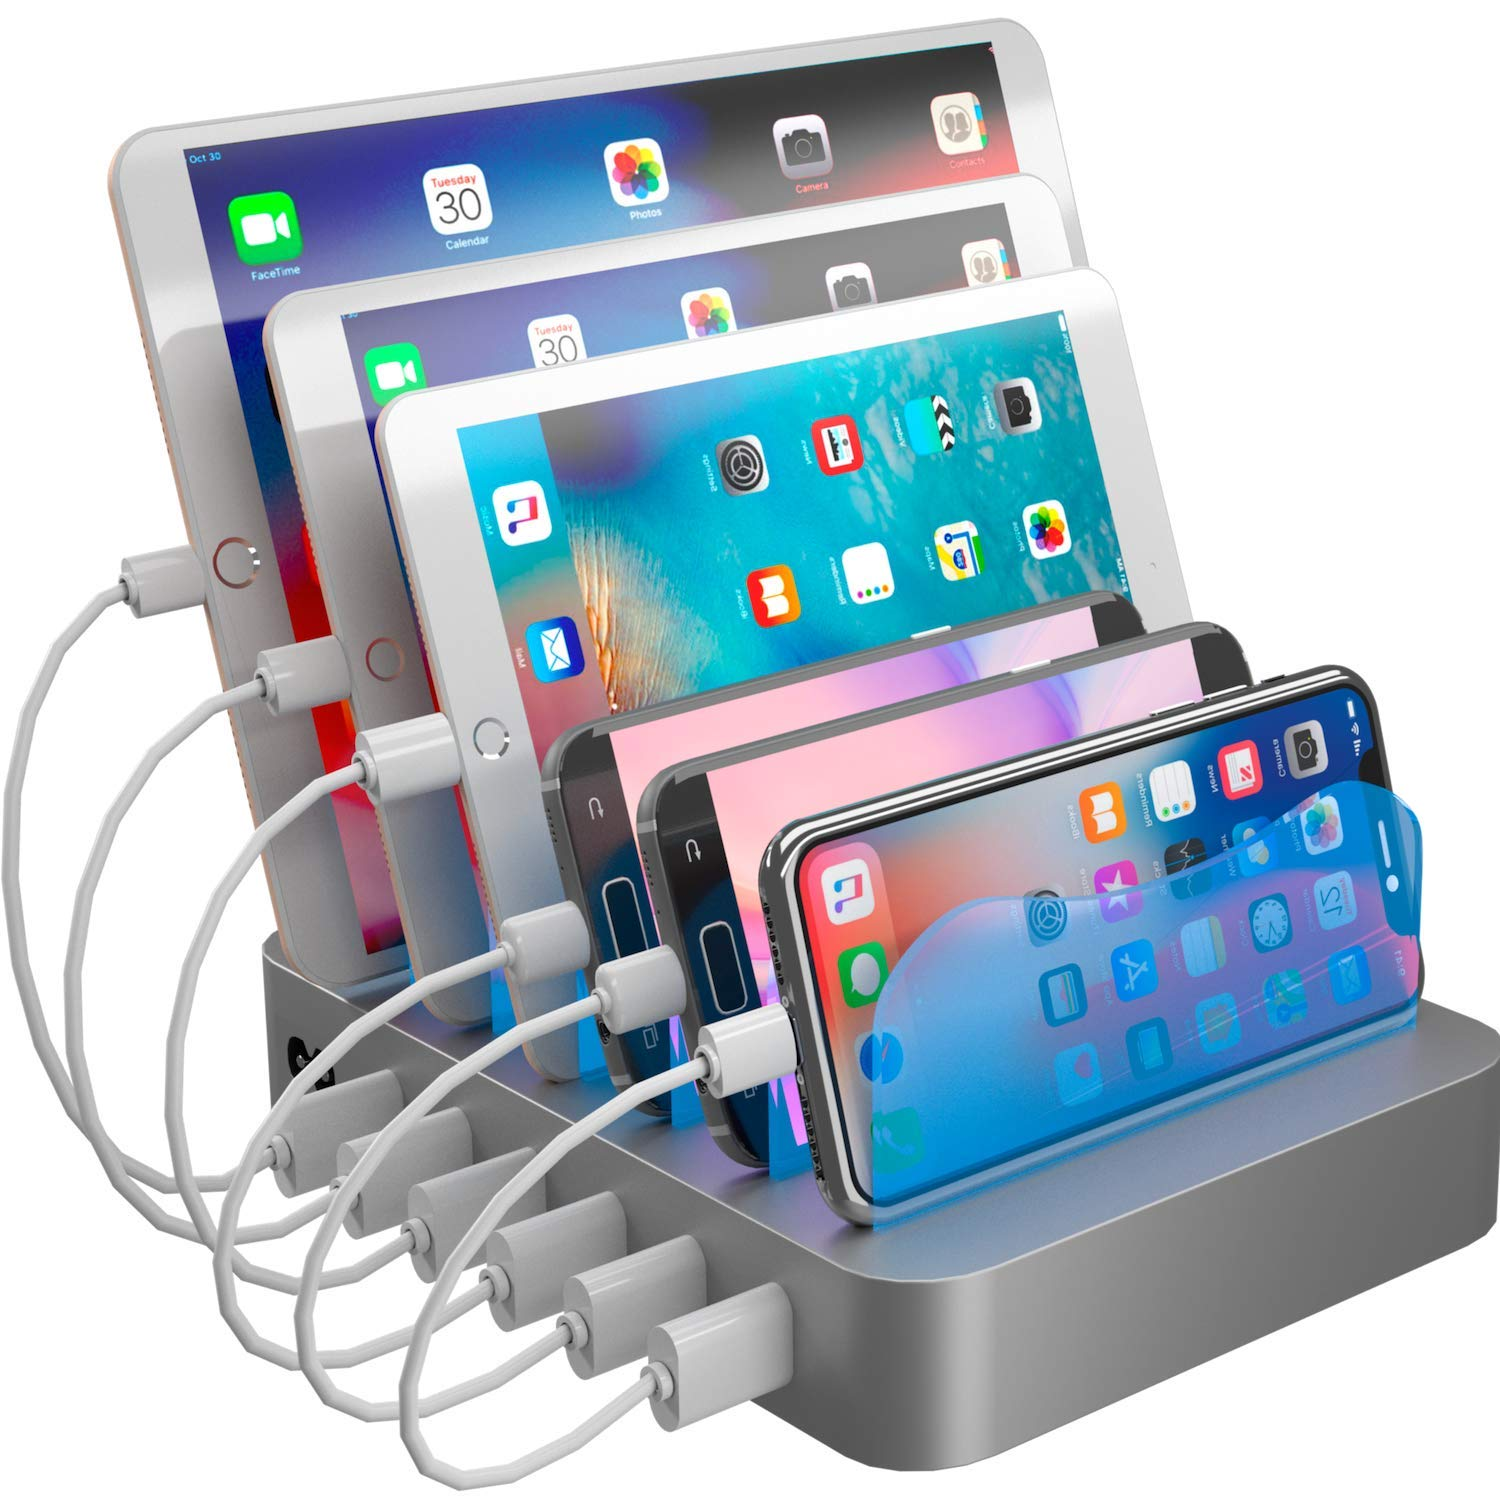 Hercules Tuff Charging Station Organizer for Multiple Devices - 6 Short Mixed Cables Included for Cell Phones, Smart Phones, Tablets, and Other Electronics by Hercules Tuff